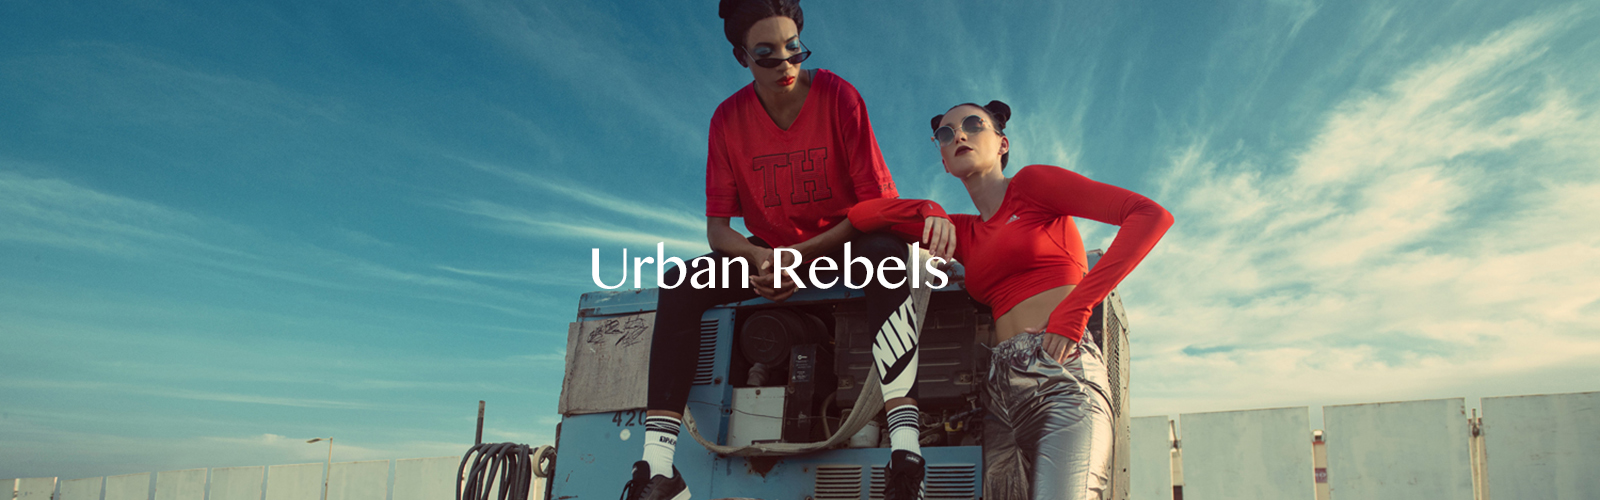 Urban-Rebels-header-with-text